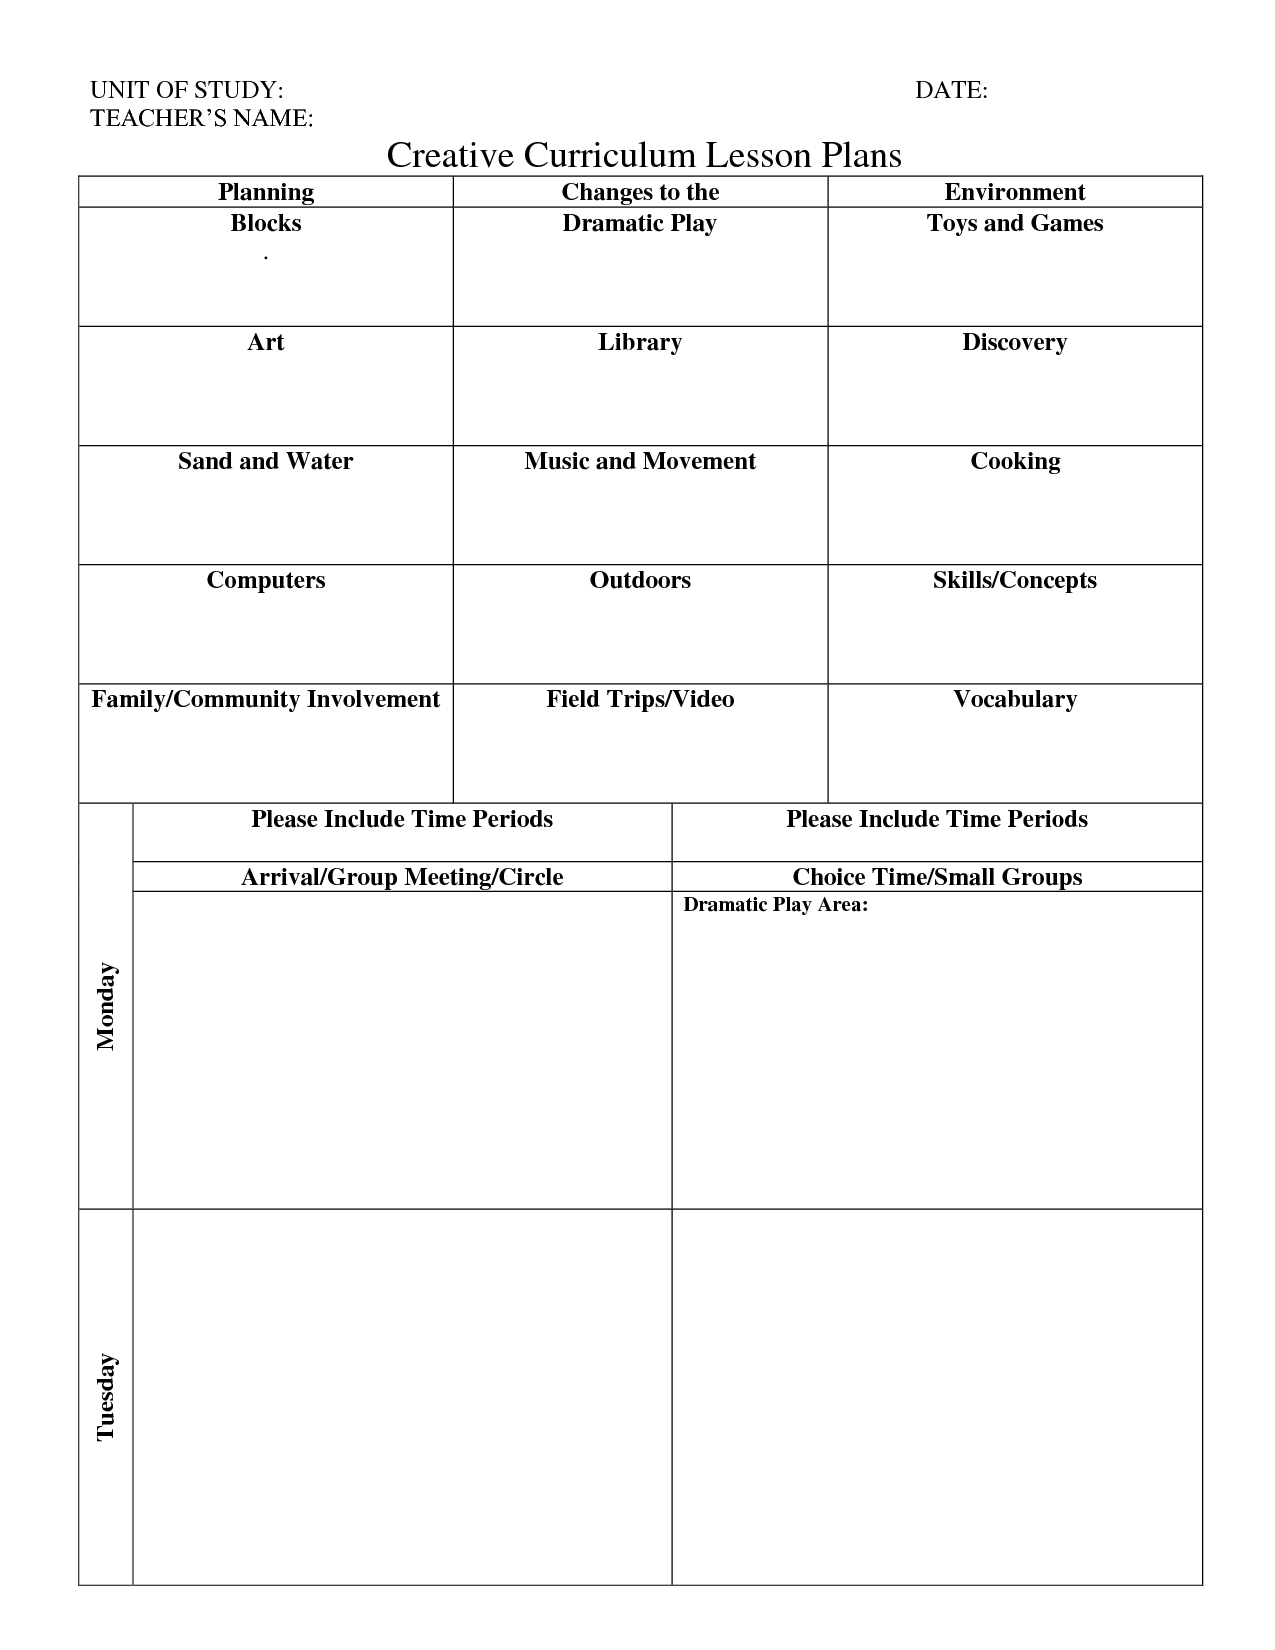 Print Creative Curriculum Lesson Plan - Bing Images